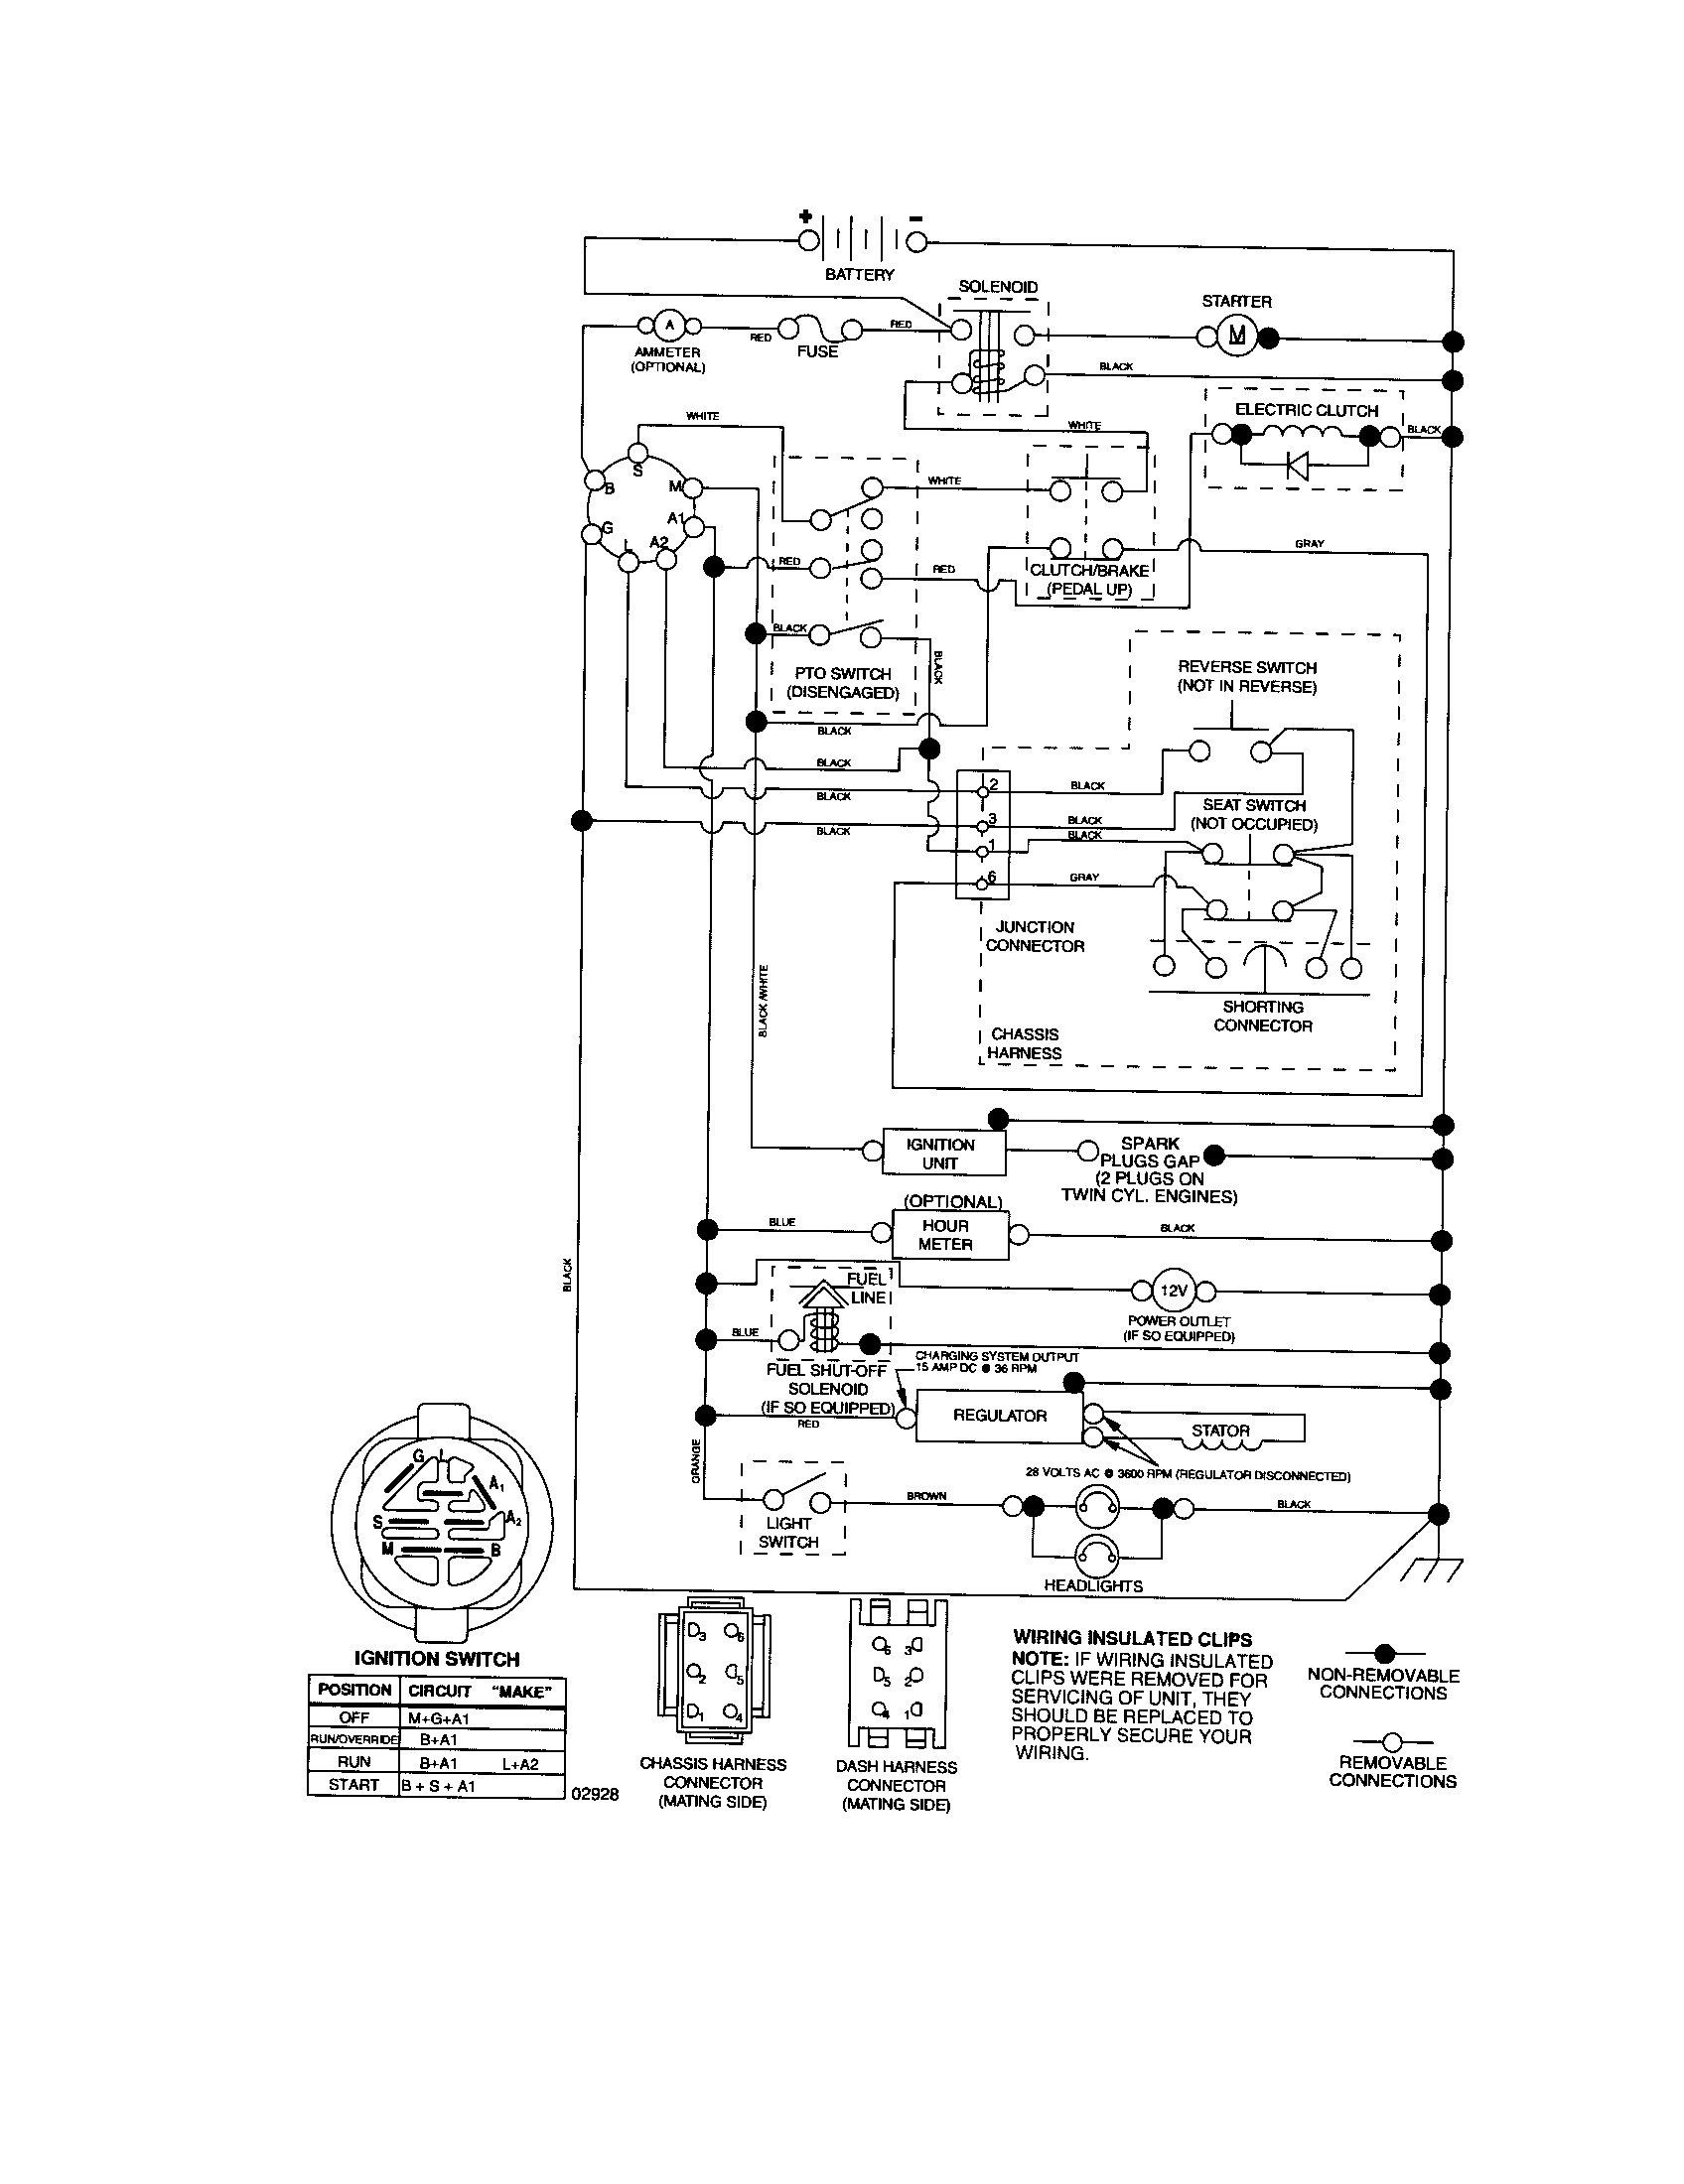 craftsman lawn tractor model 917276904 schematic diagram tractor old ford tractor clutch diagram printable wiring diagram schematic [ 1696 x 2200 Pixel ]